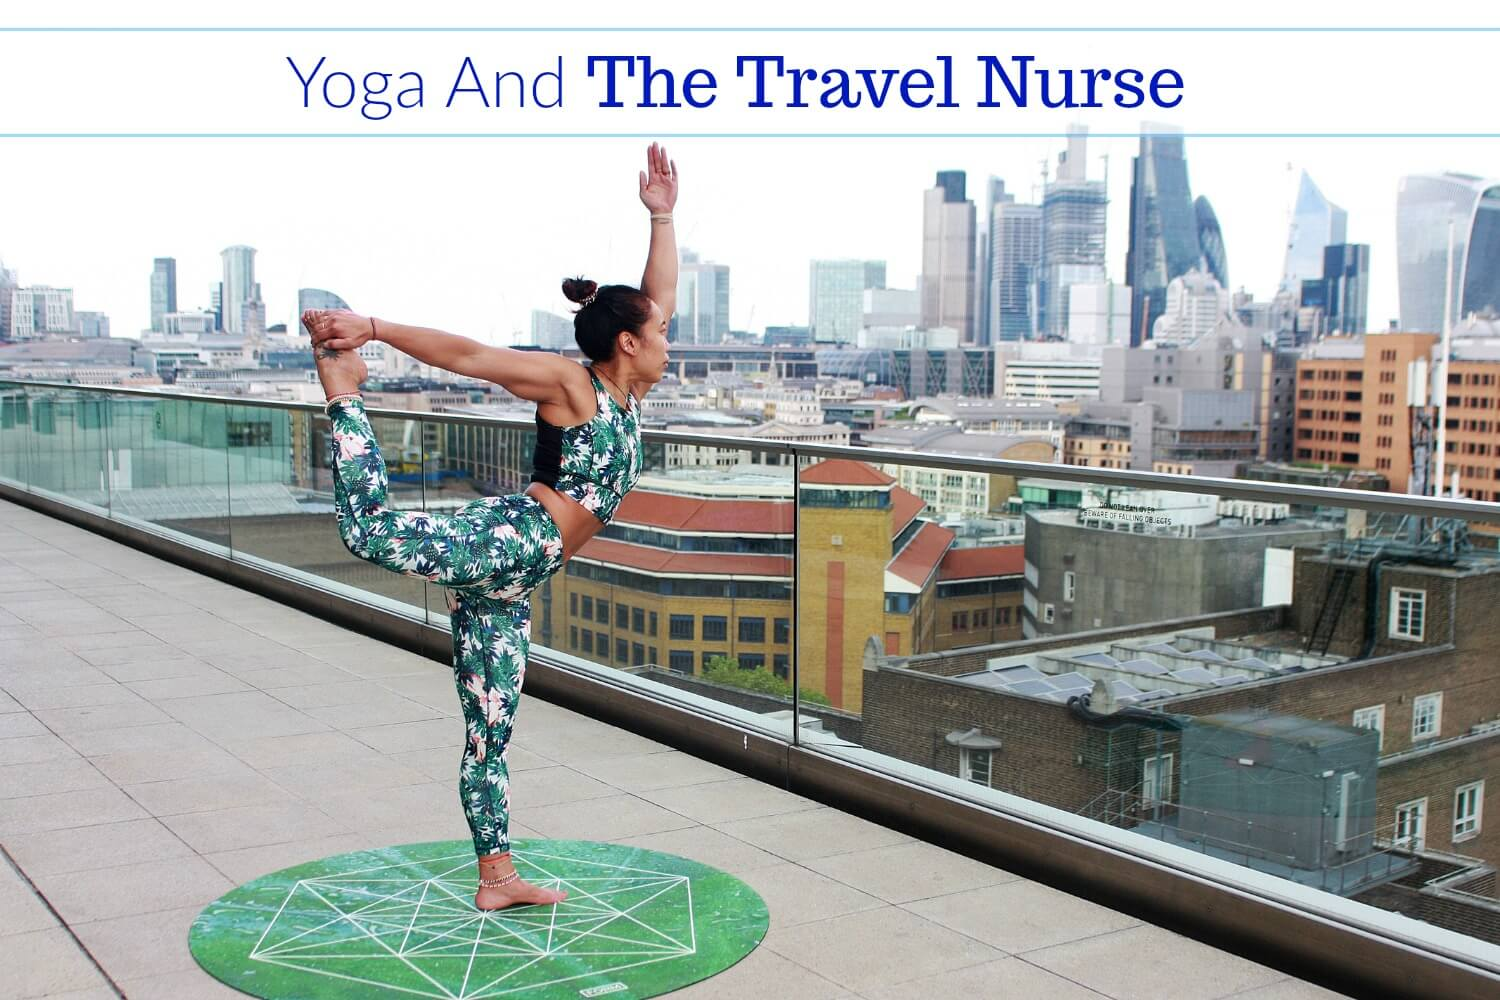 Travel Nurses Need Yoga To Stay Healthy!